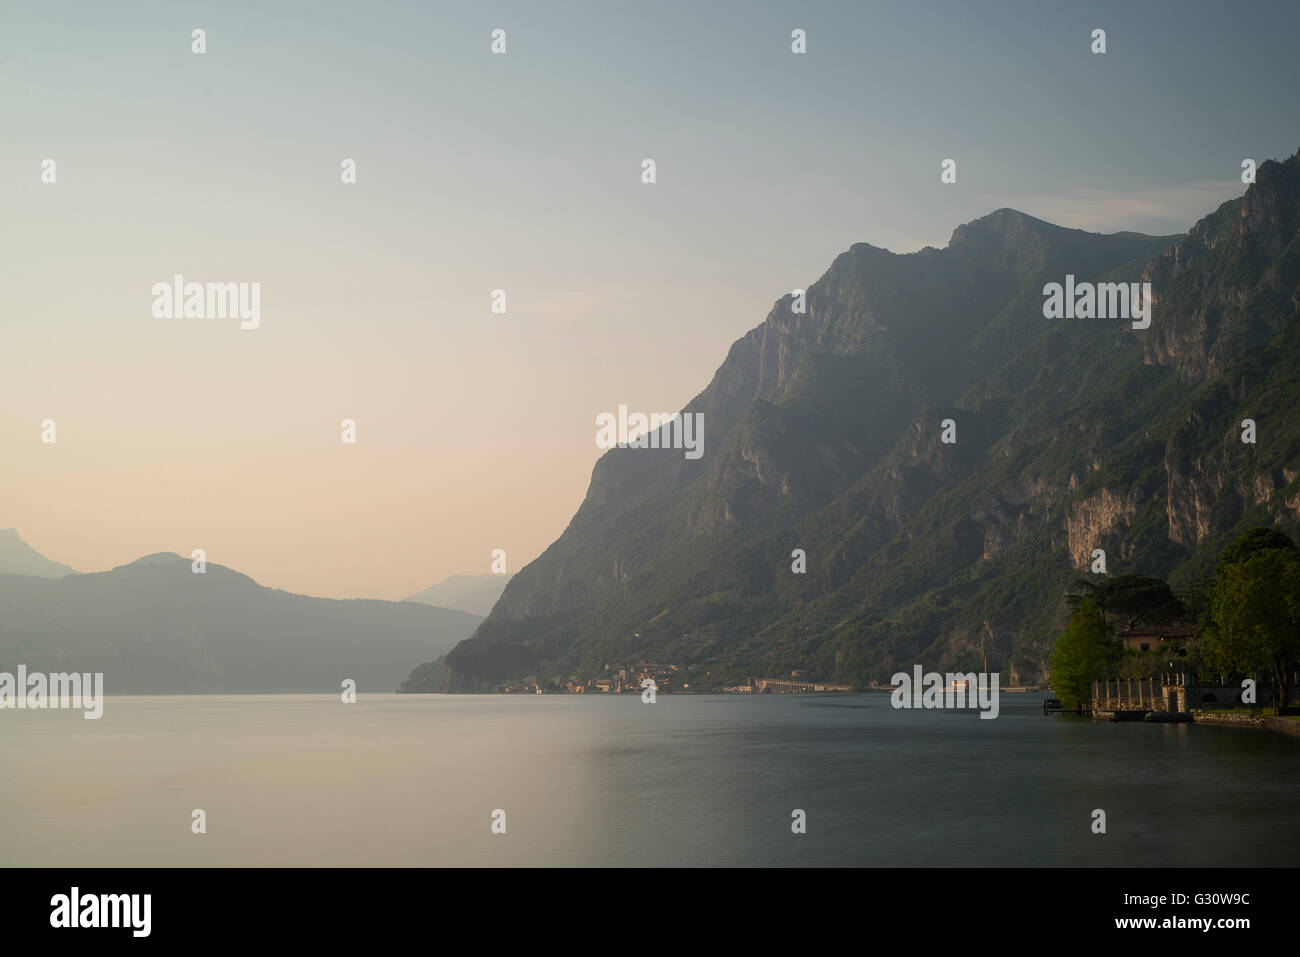 Steep and rugged mountain cliffs and rocks at the lakeside near Marone at Lake Iseo in warm sunlight at sunset, - Stock Image